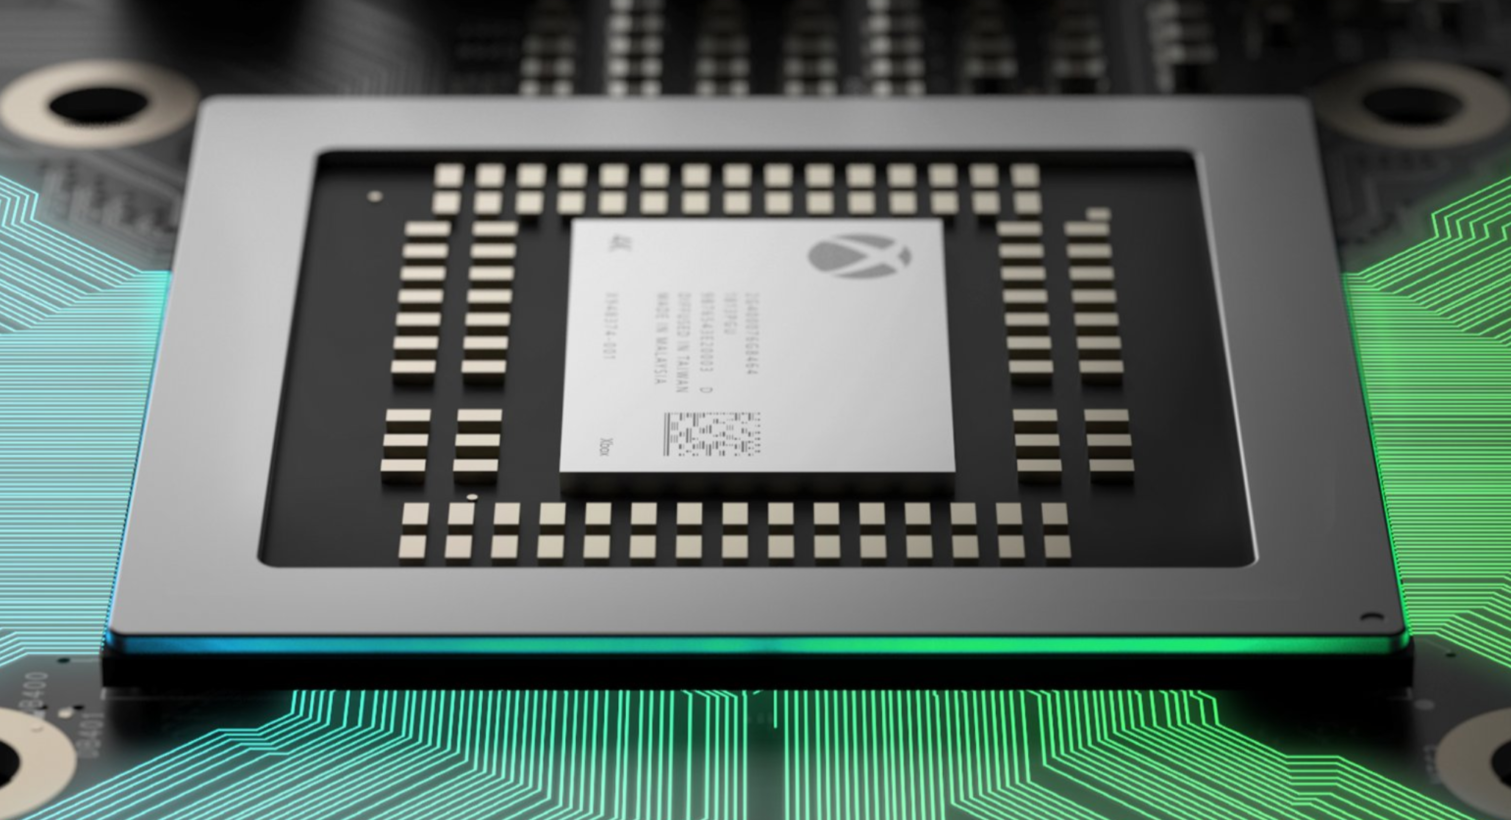 Created At 2017 04 07 0219 Xbox 360 Cold Cathode Lighting 4 Just As Promised Eurogamer Has Revealed The Specs For Microsofts Upcoming Project Scorpio Successor To One This Morning